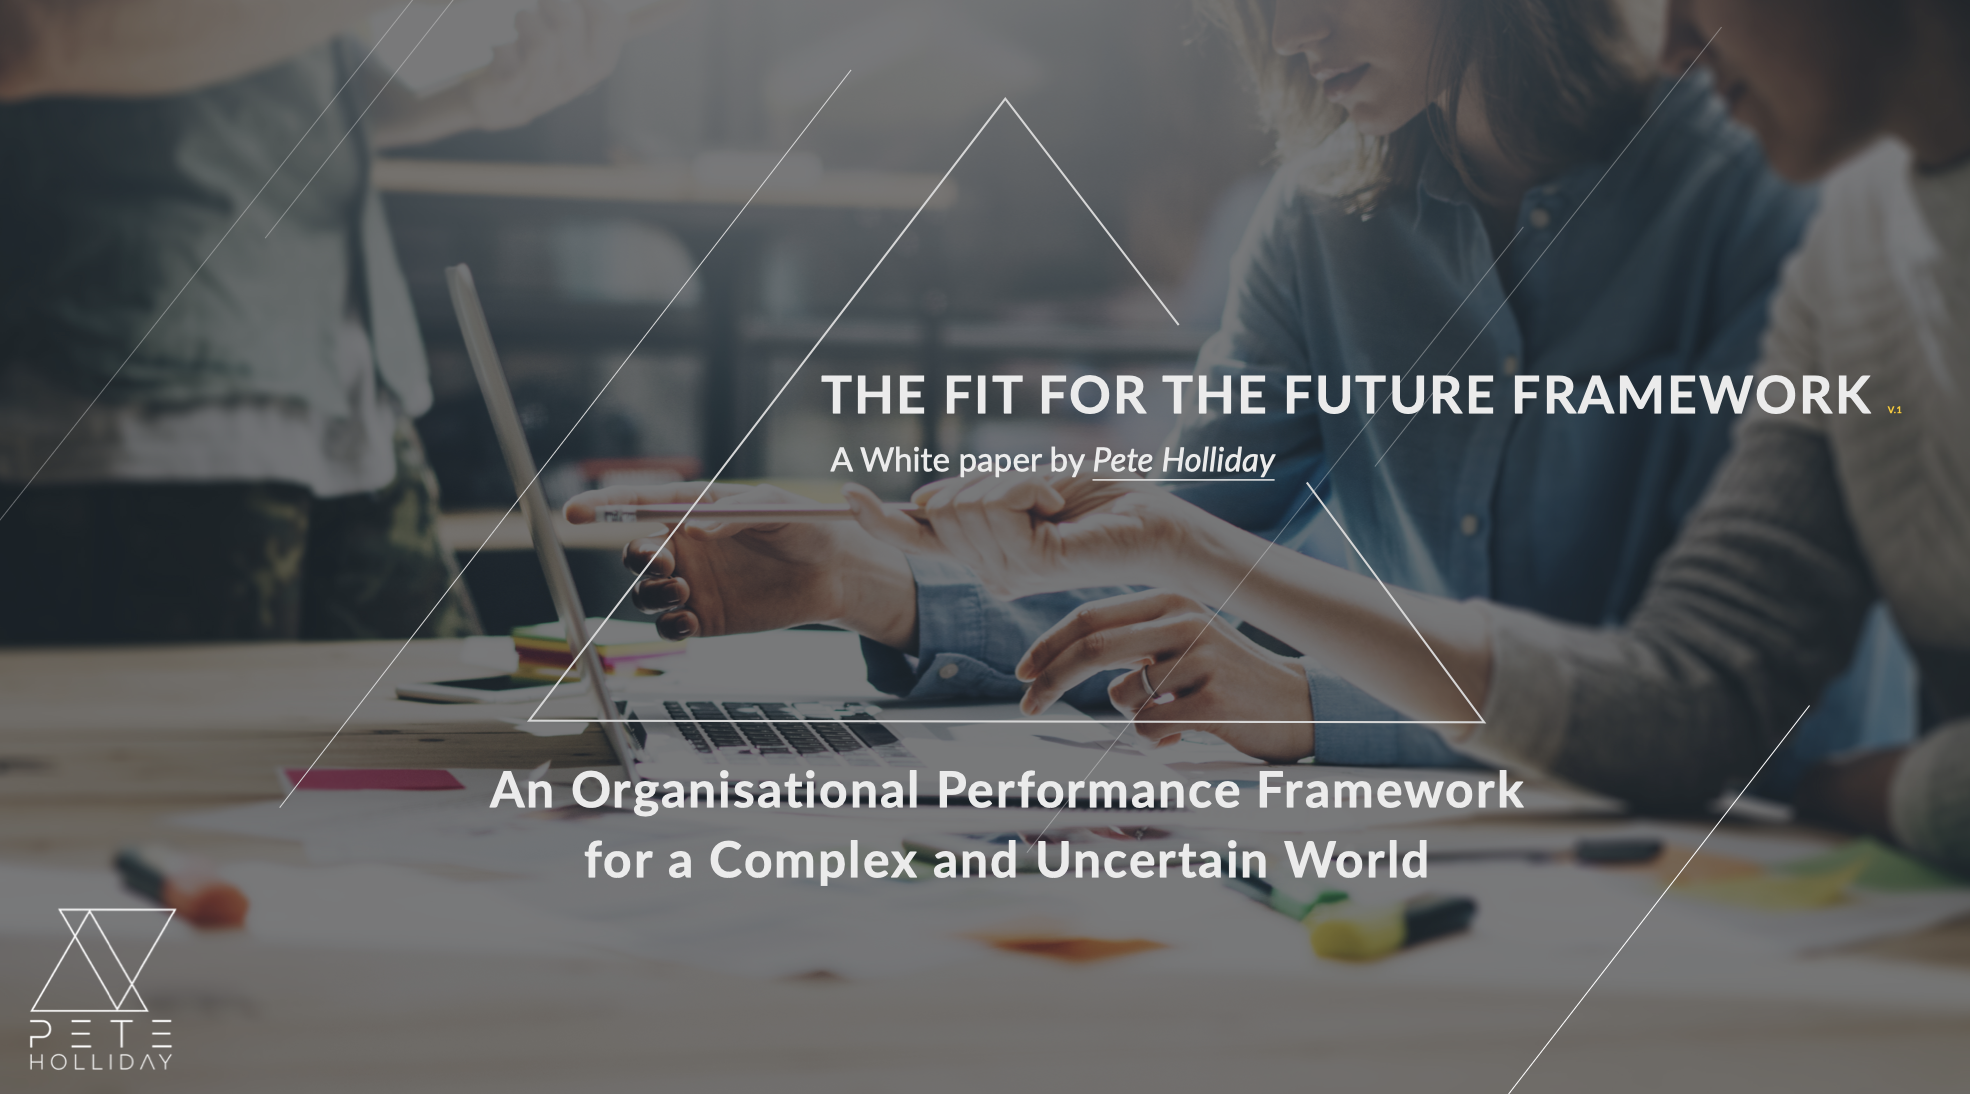 The Fit for the Future Framework - I created the Fit for the Future Framework to answer questions about preparing for the future of work. Many organisations are interested in the future of work, but most are unsure of how to to get there or achieve greater levels of business agility. You can use the Fit for the Future Framework as a strategic tool for guiding their organisations evolution.